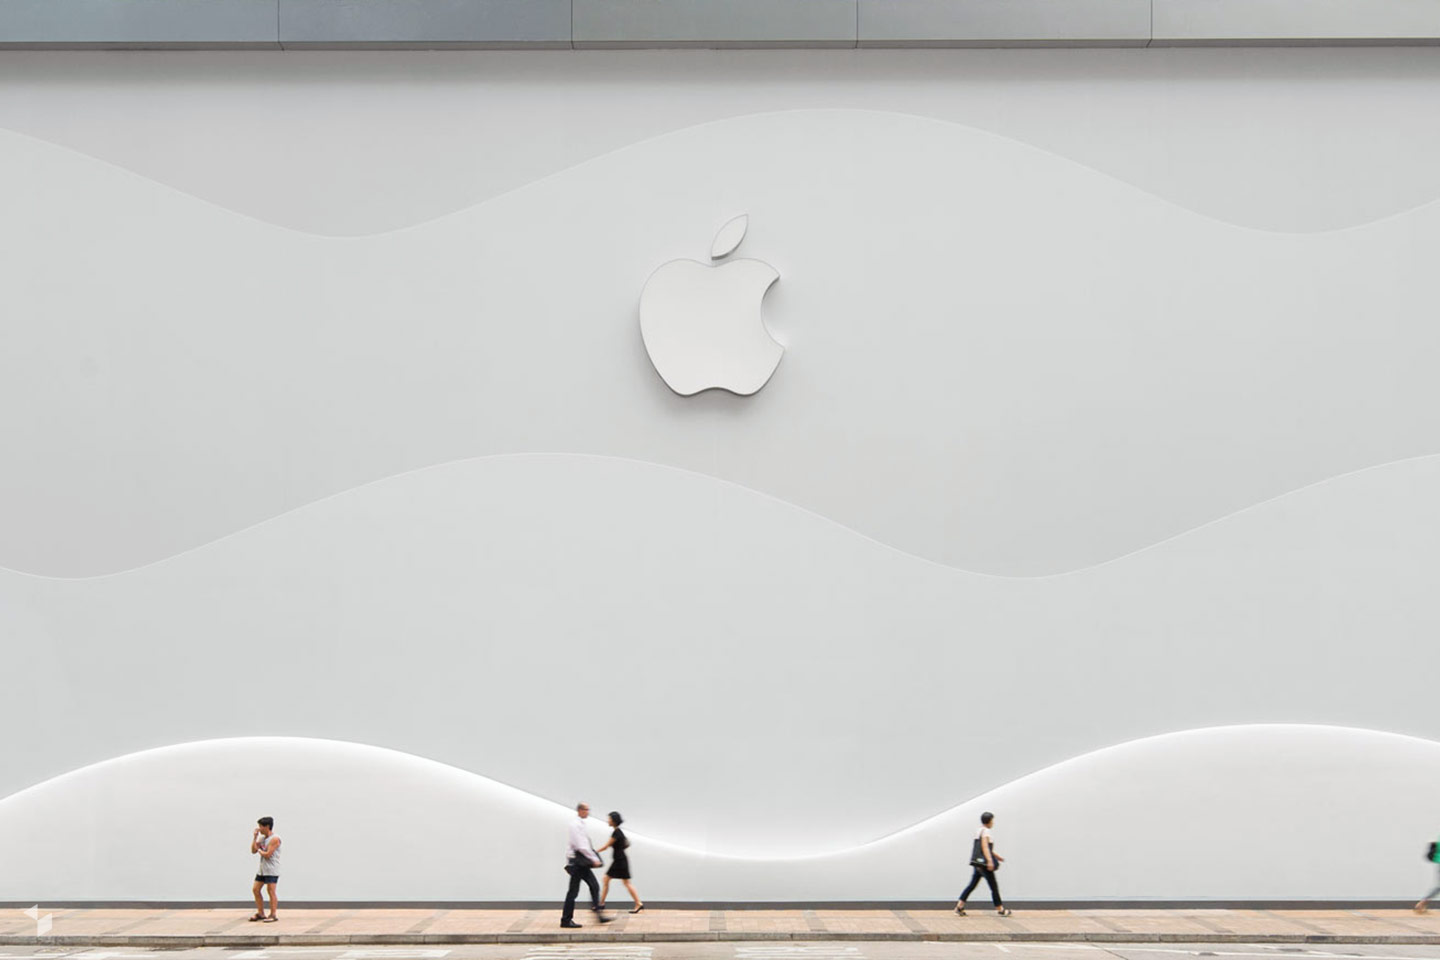 Apple Canton Road in Hong Kong eröffnete am 31. Juli 2015